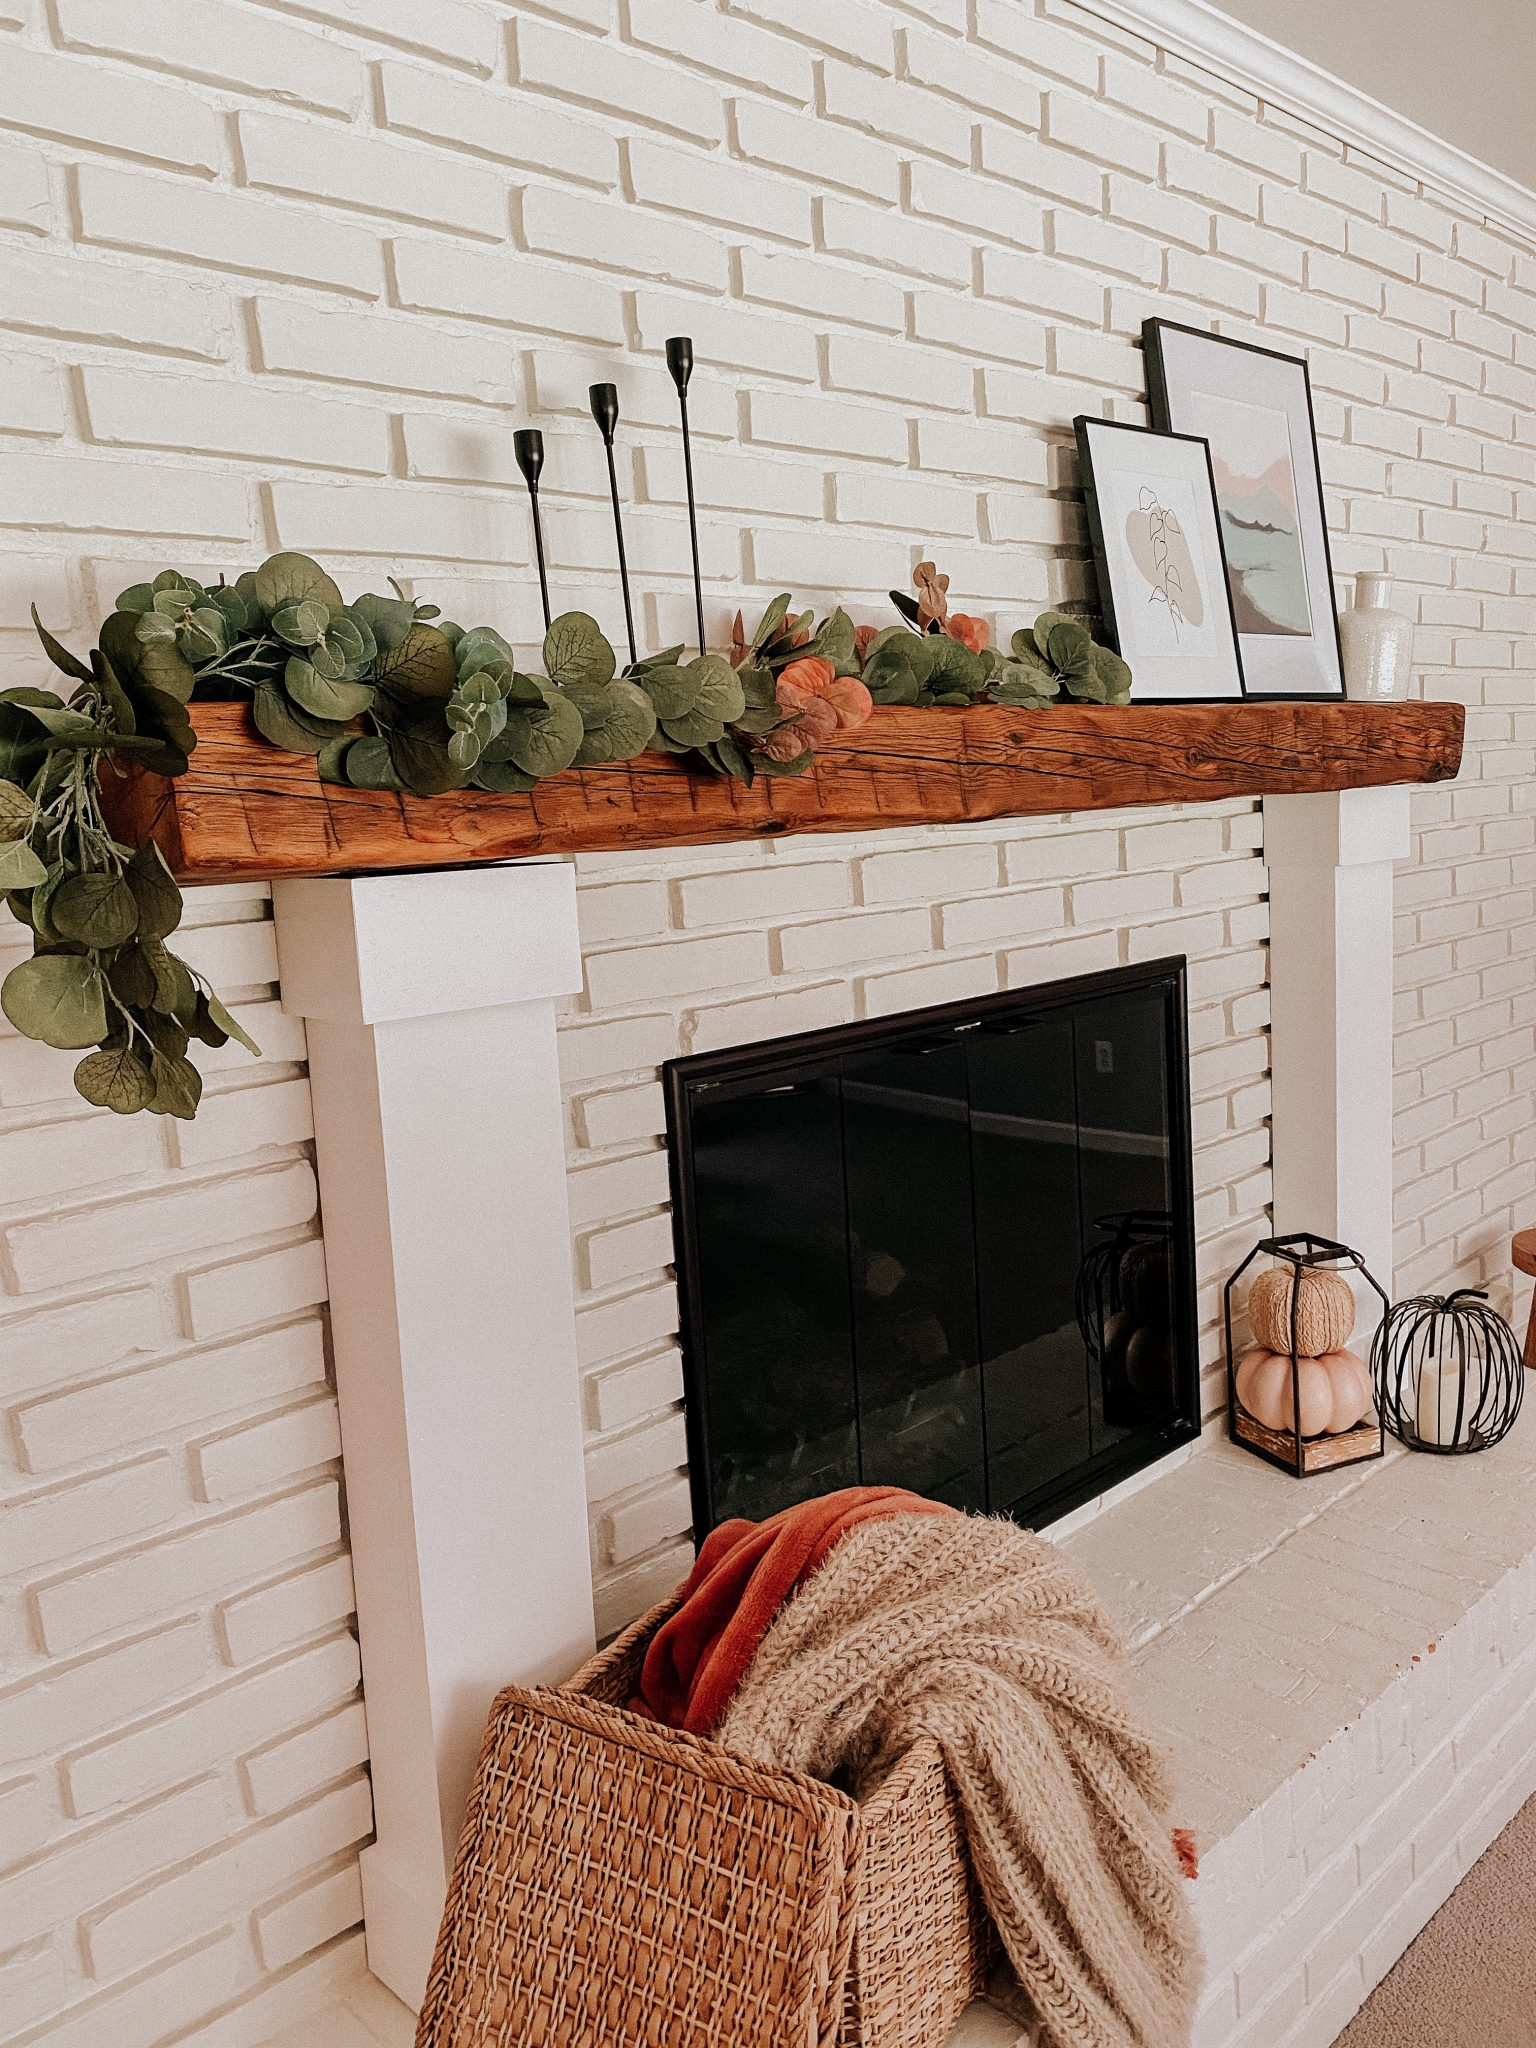 Fall living room accents | Daily Splendor Life and Style Blog #falldecor #falllivingroom #manteldecor #fallfireplace #neutraldecor #simplemantel #fallaccents